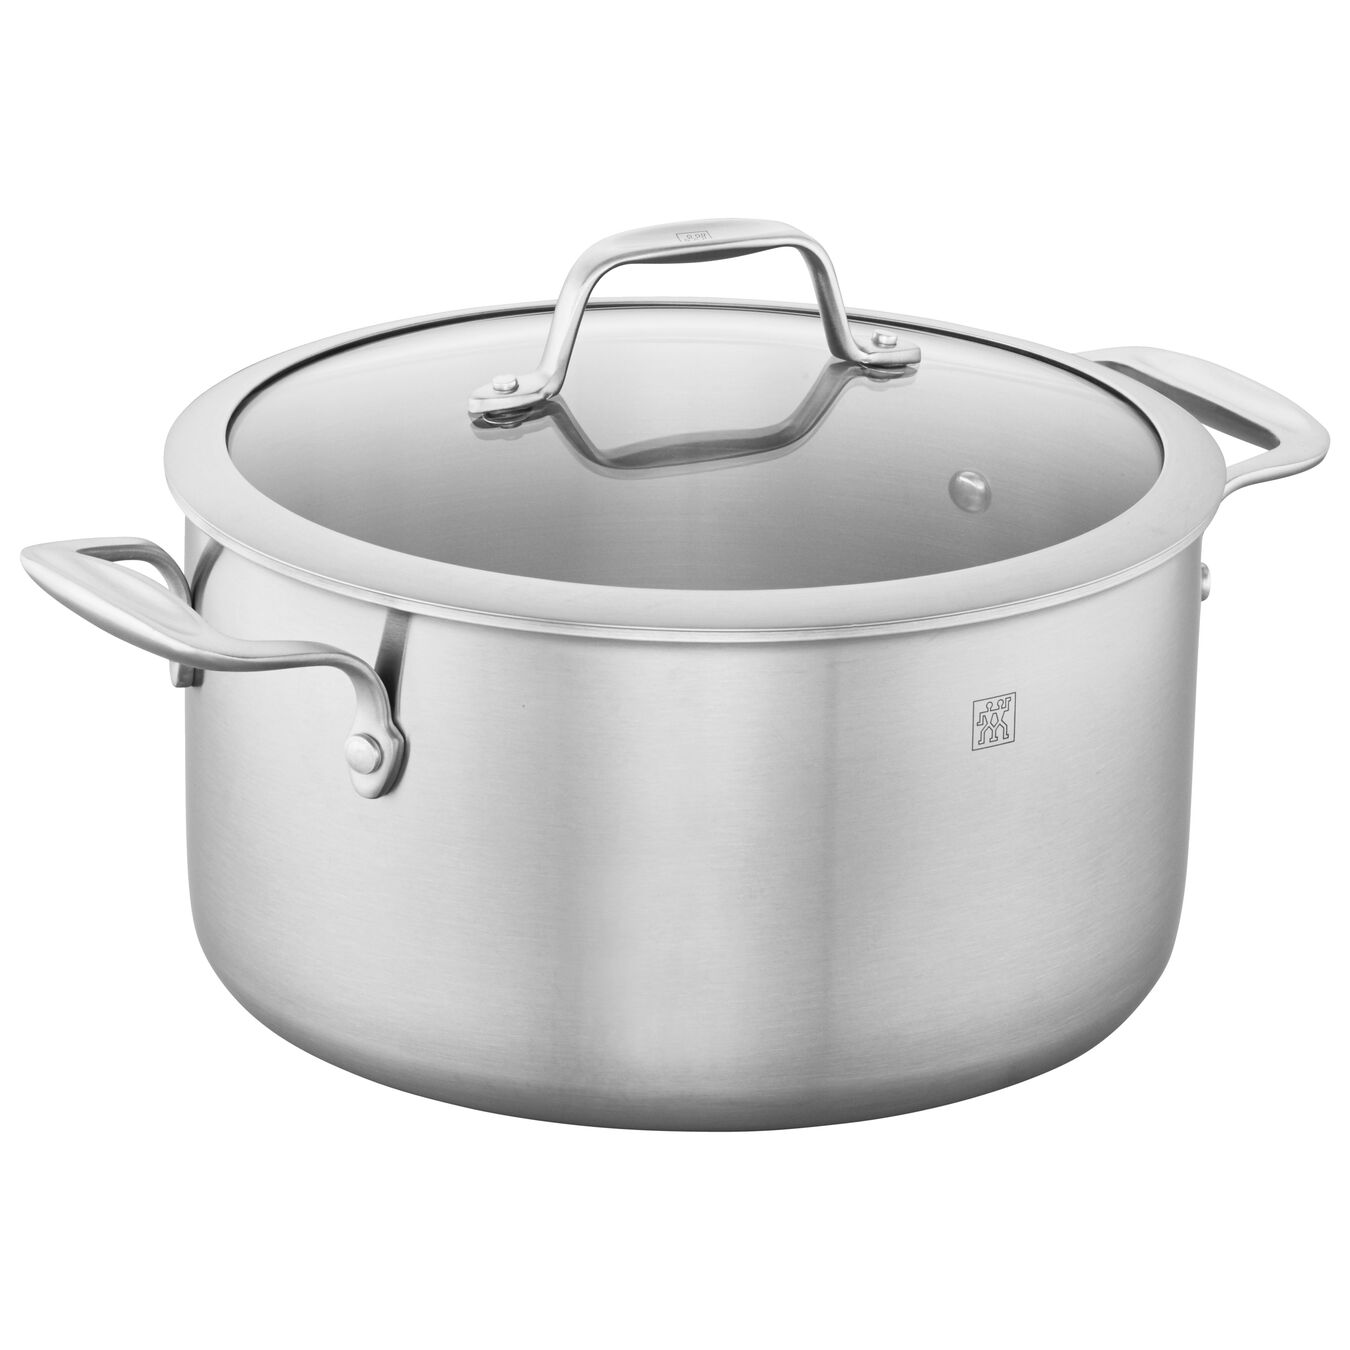 3-ply 10-pc Stainless Steel Cookware Set,,large 2